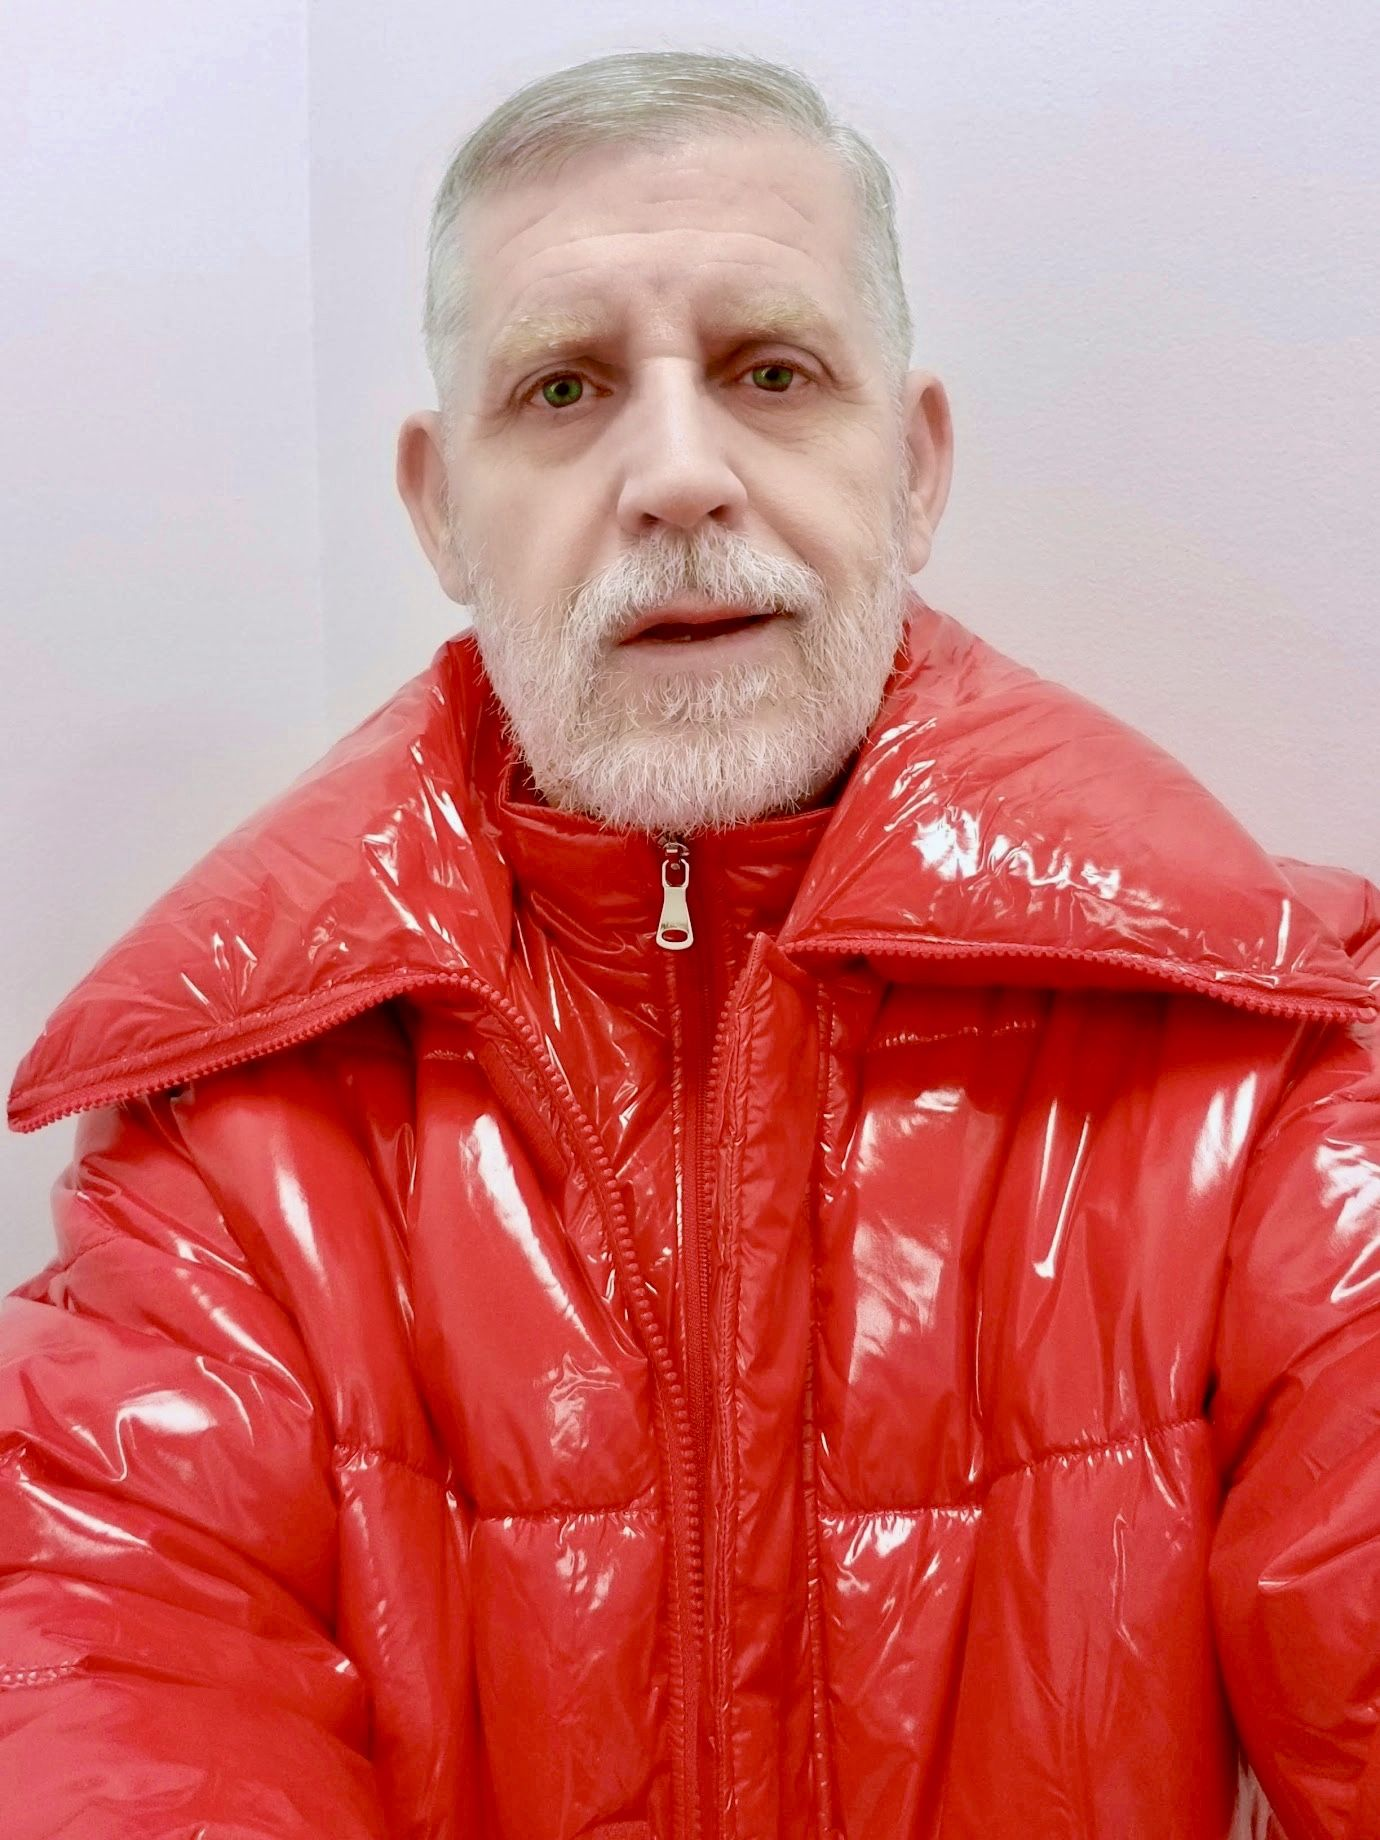 Andrea Montenegro En Latin Lover green eyed blond albanian man | red, winter jackets, leather